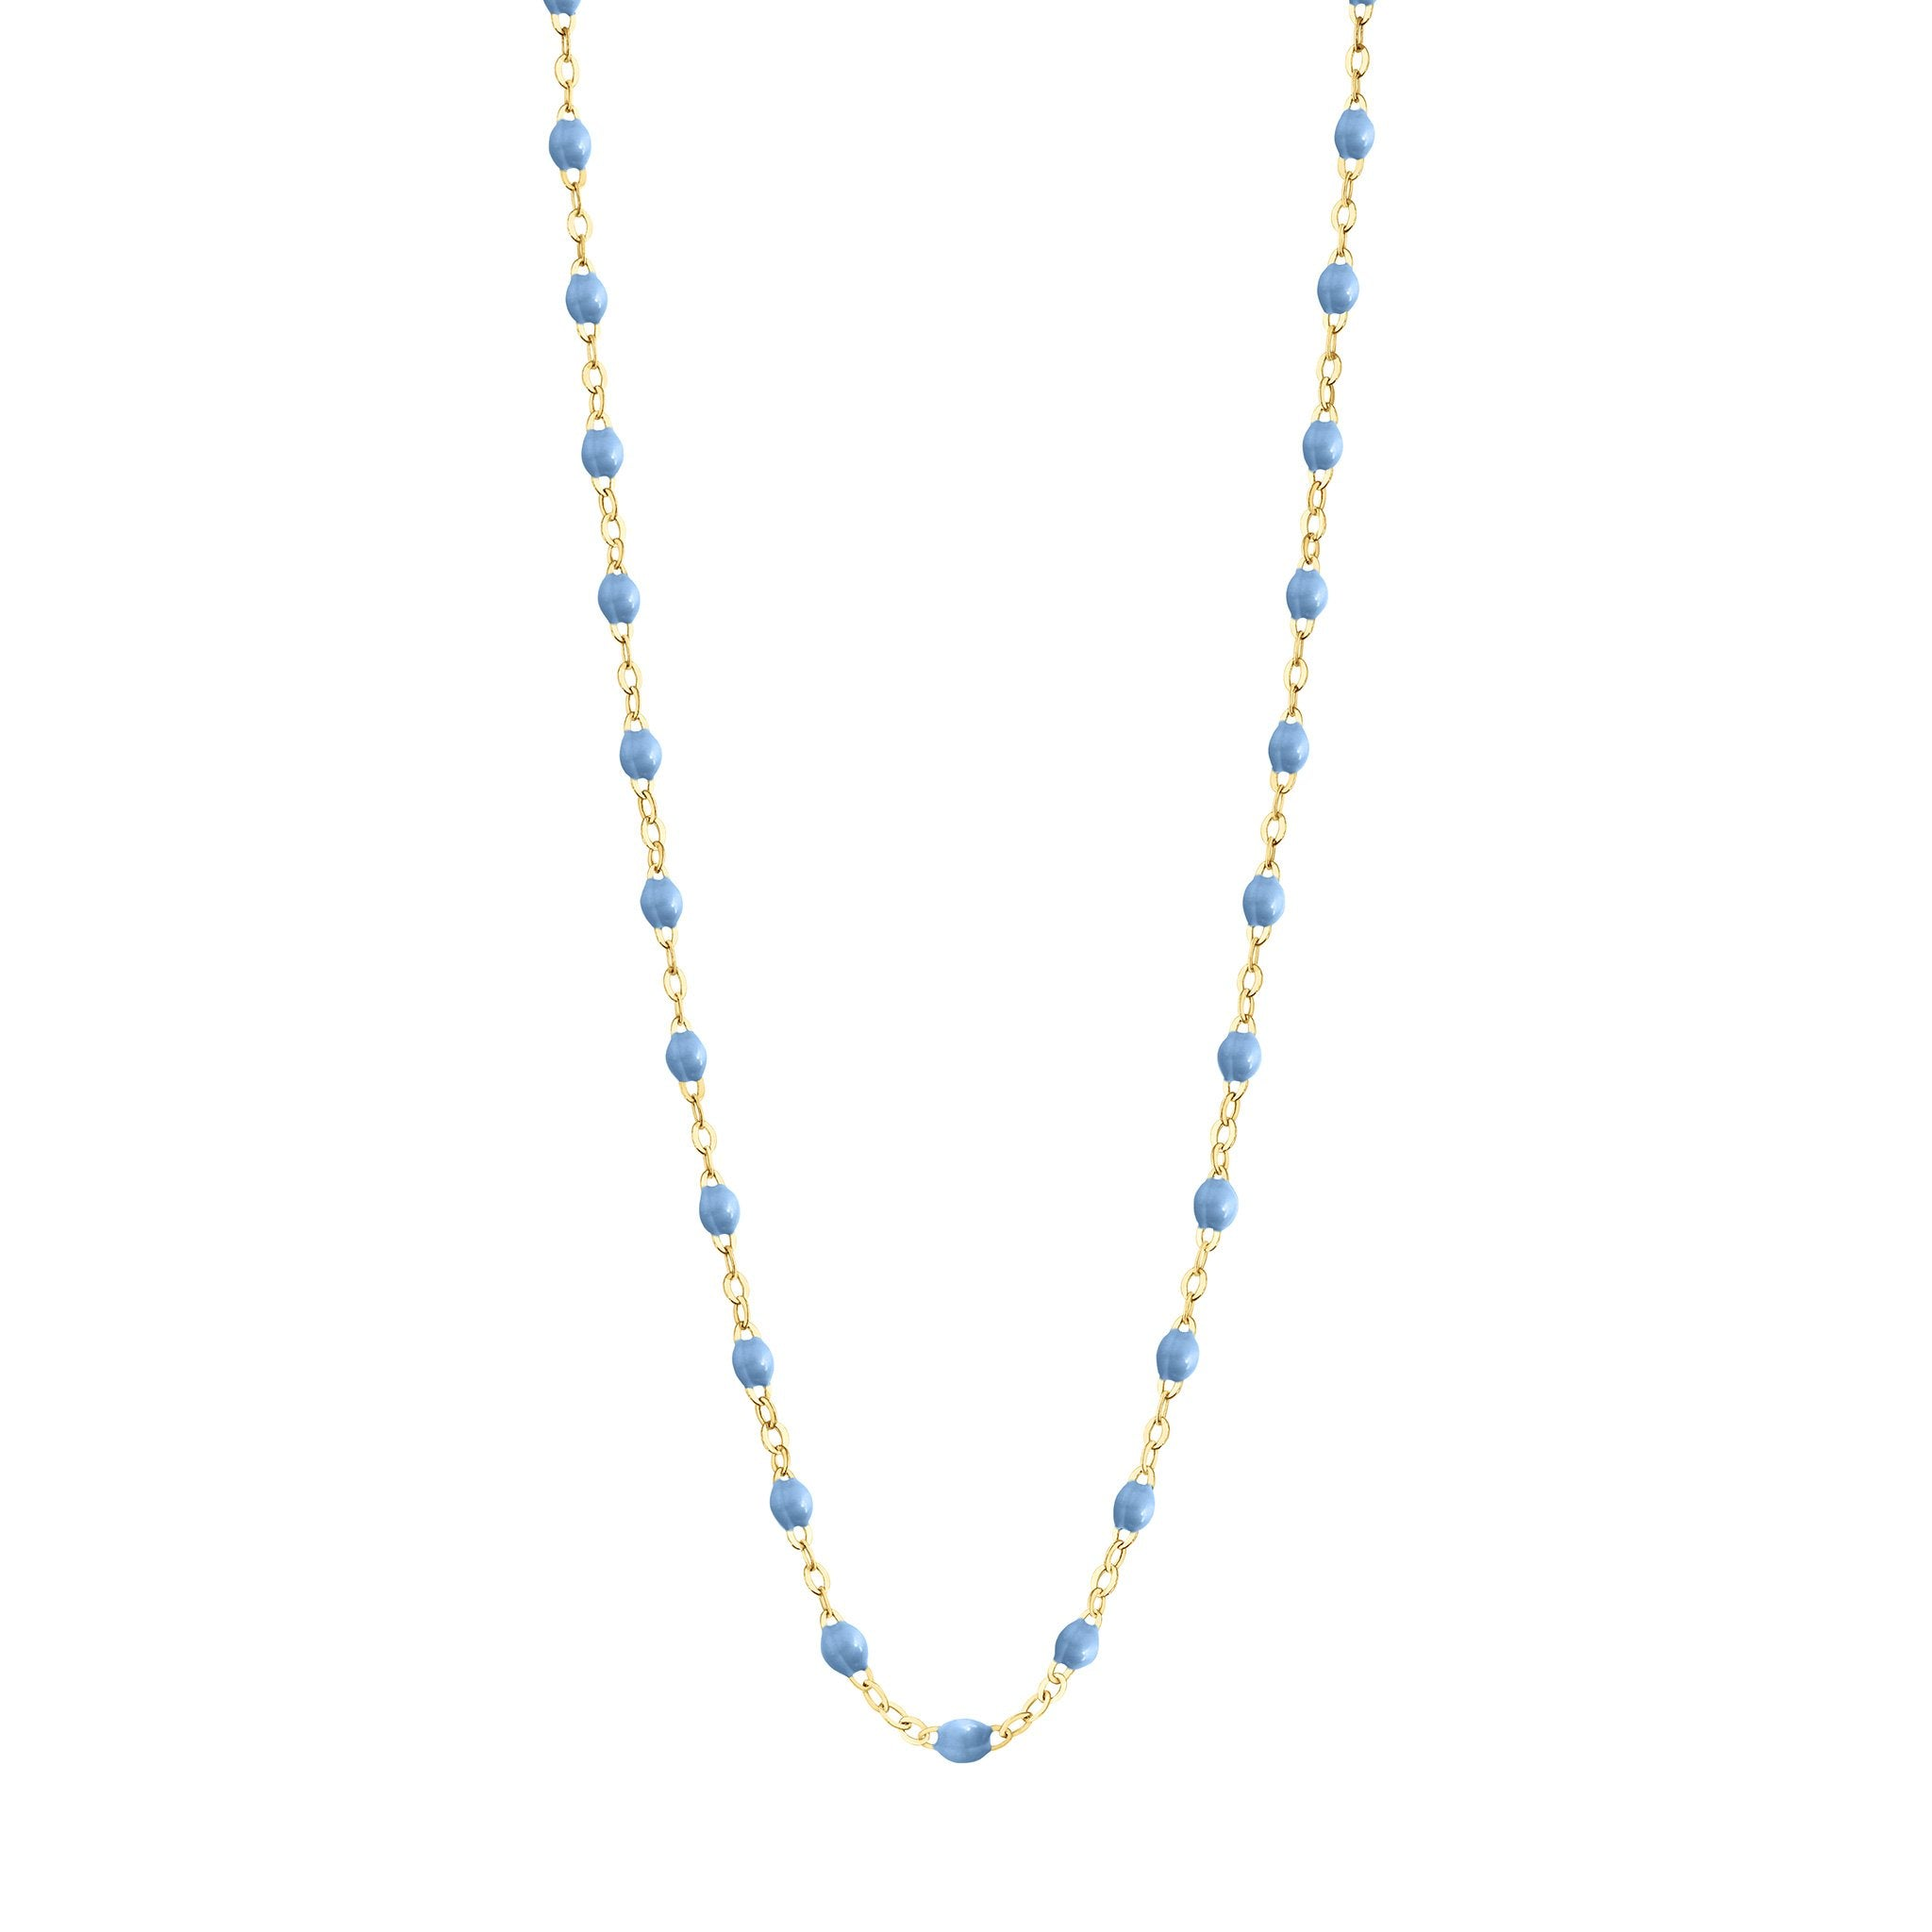 Gigi Clozeau - Classic Gigi Sky necklace, Yellow Gold, 17.7